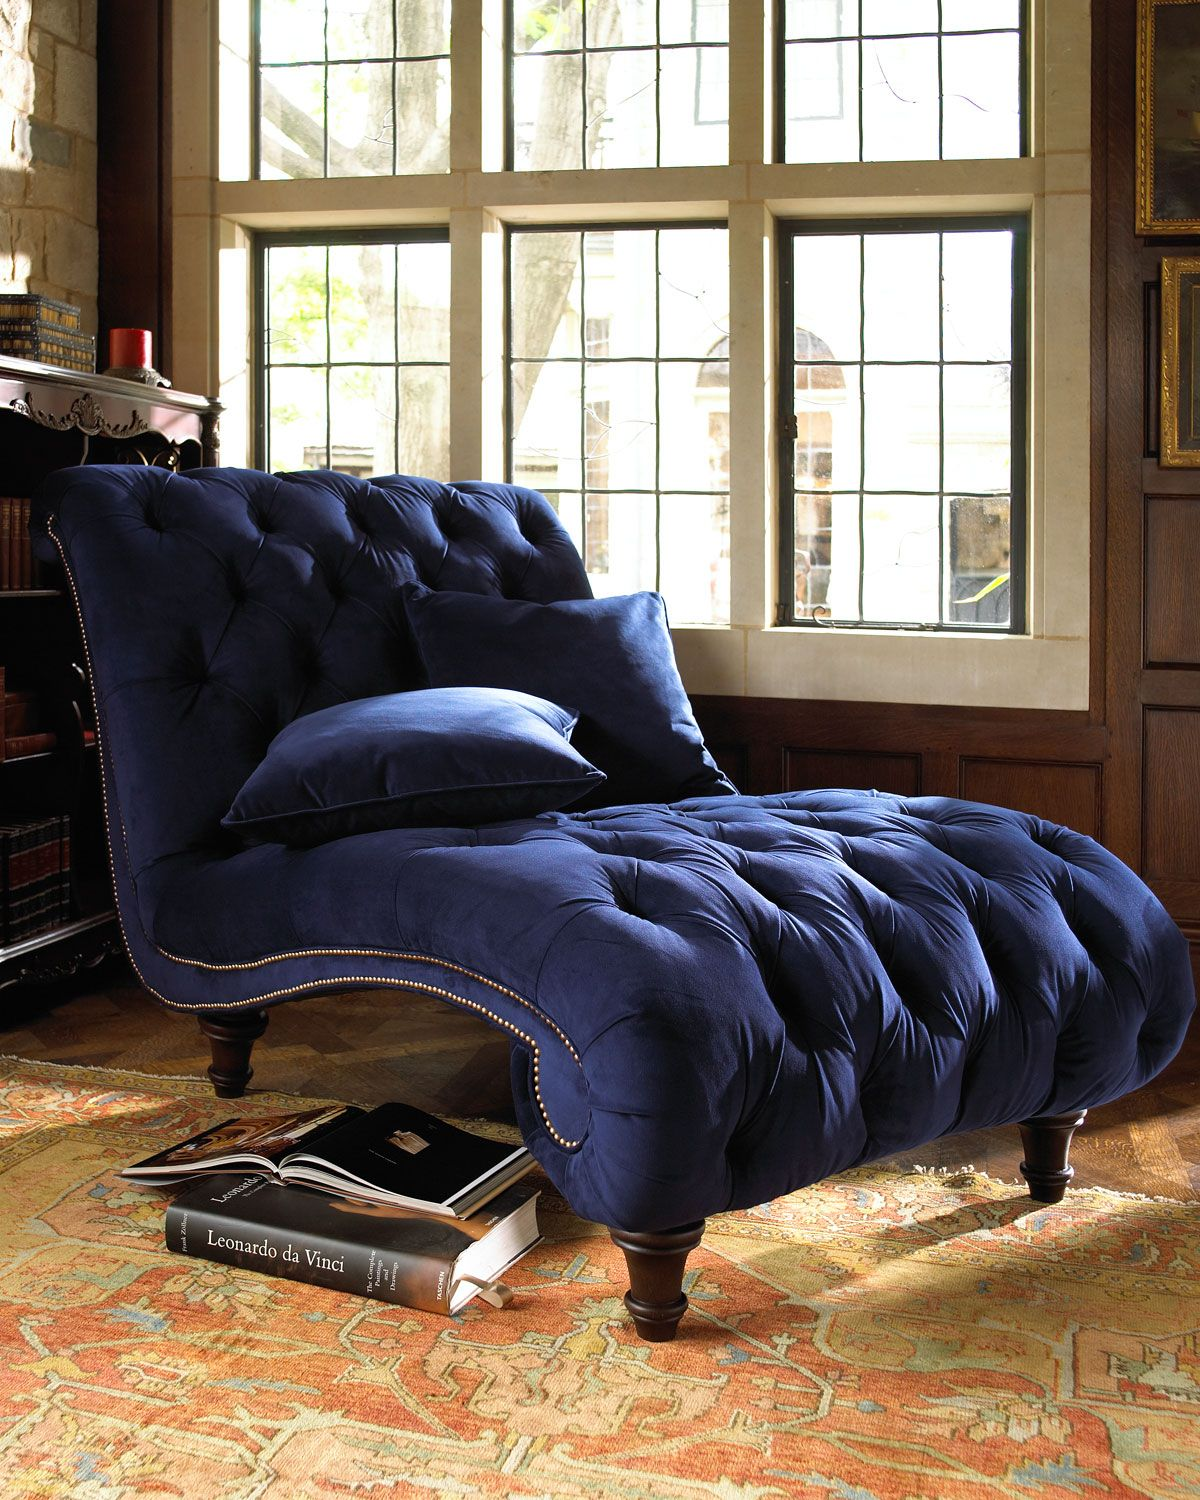 bedroom chair chaise video games old hickory tannery royal marco 2 999 00 room board